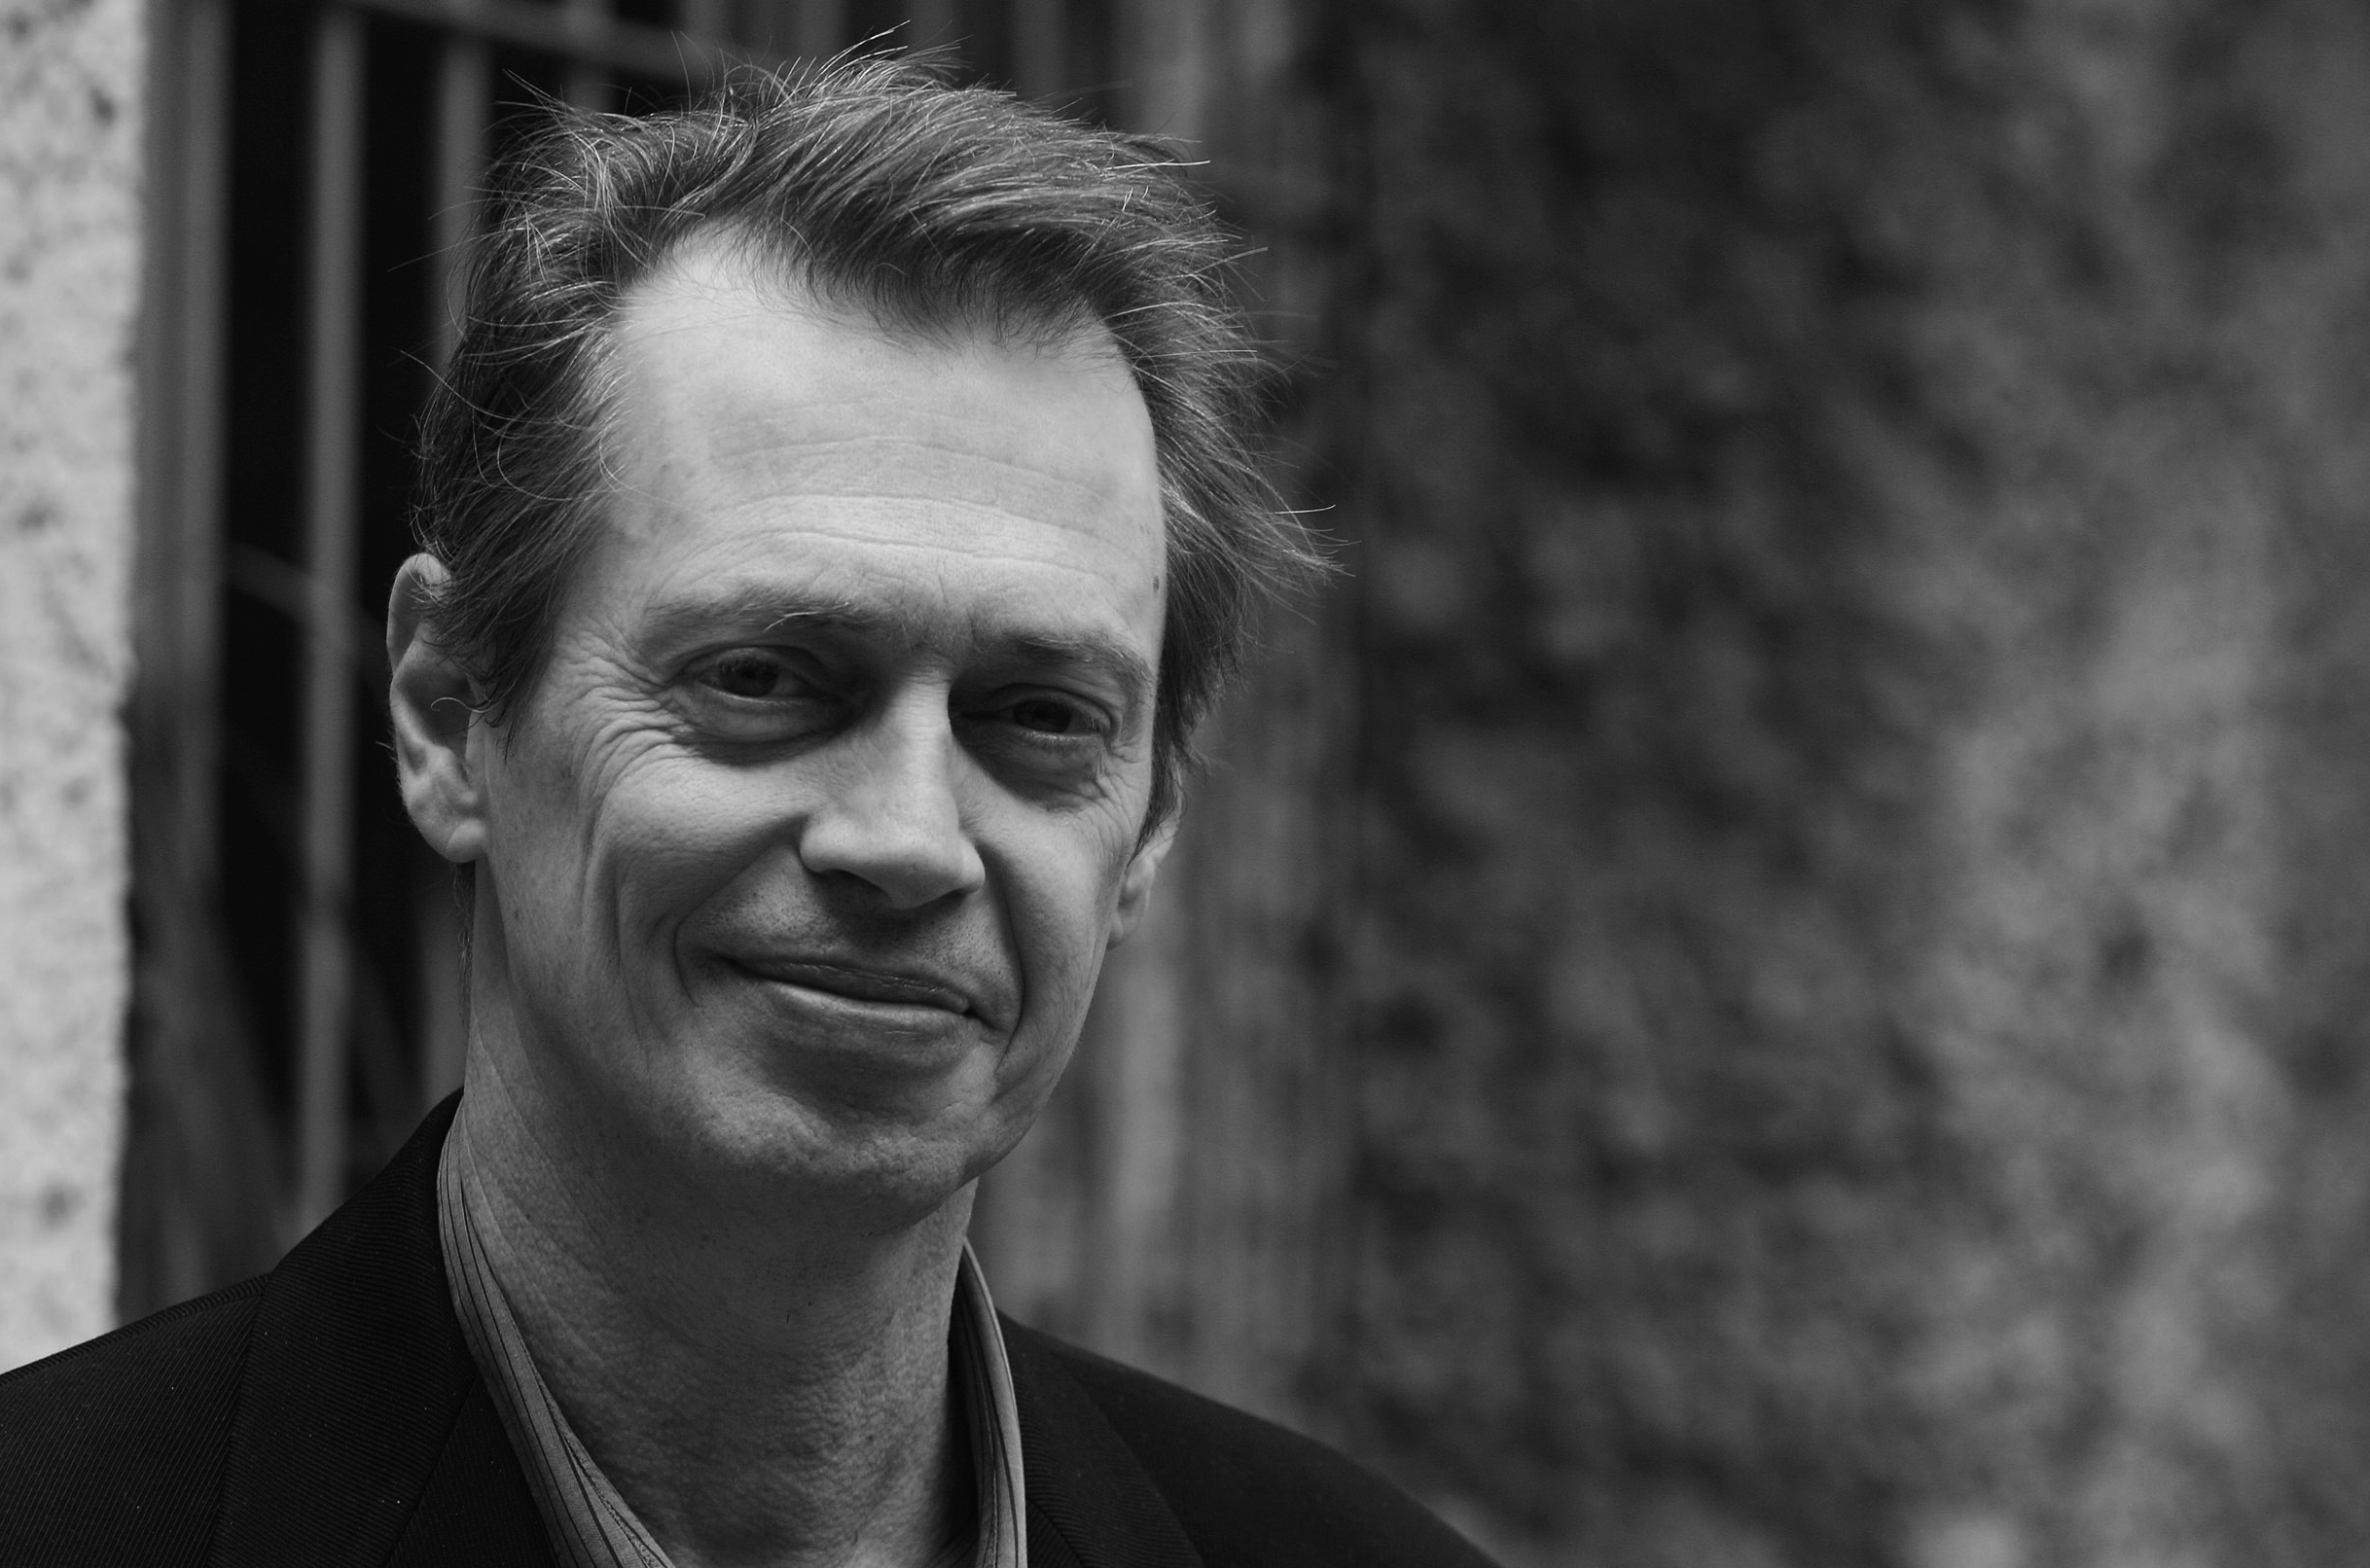 monochrome steve buscemi wallpaper 60835